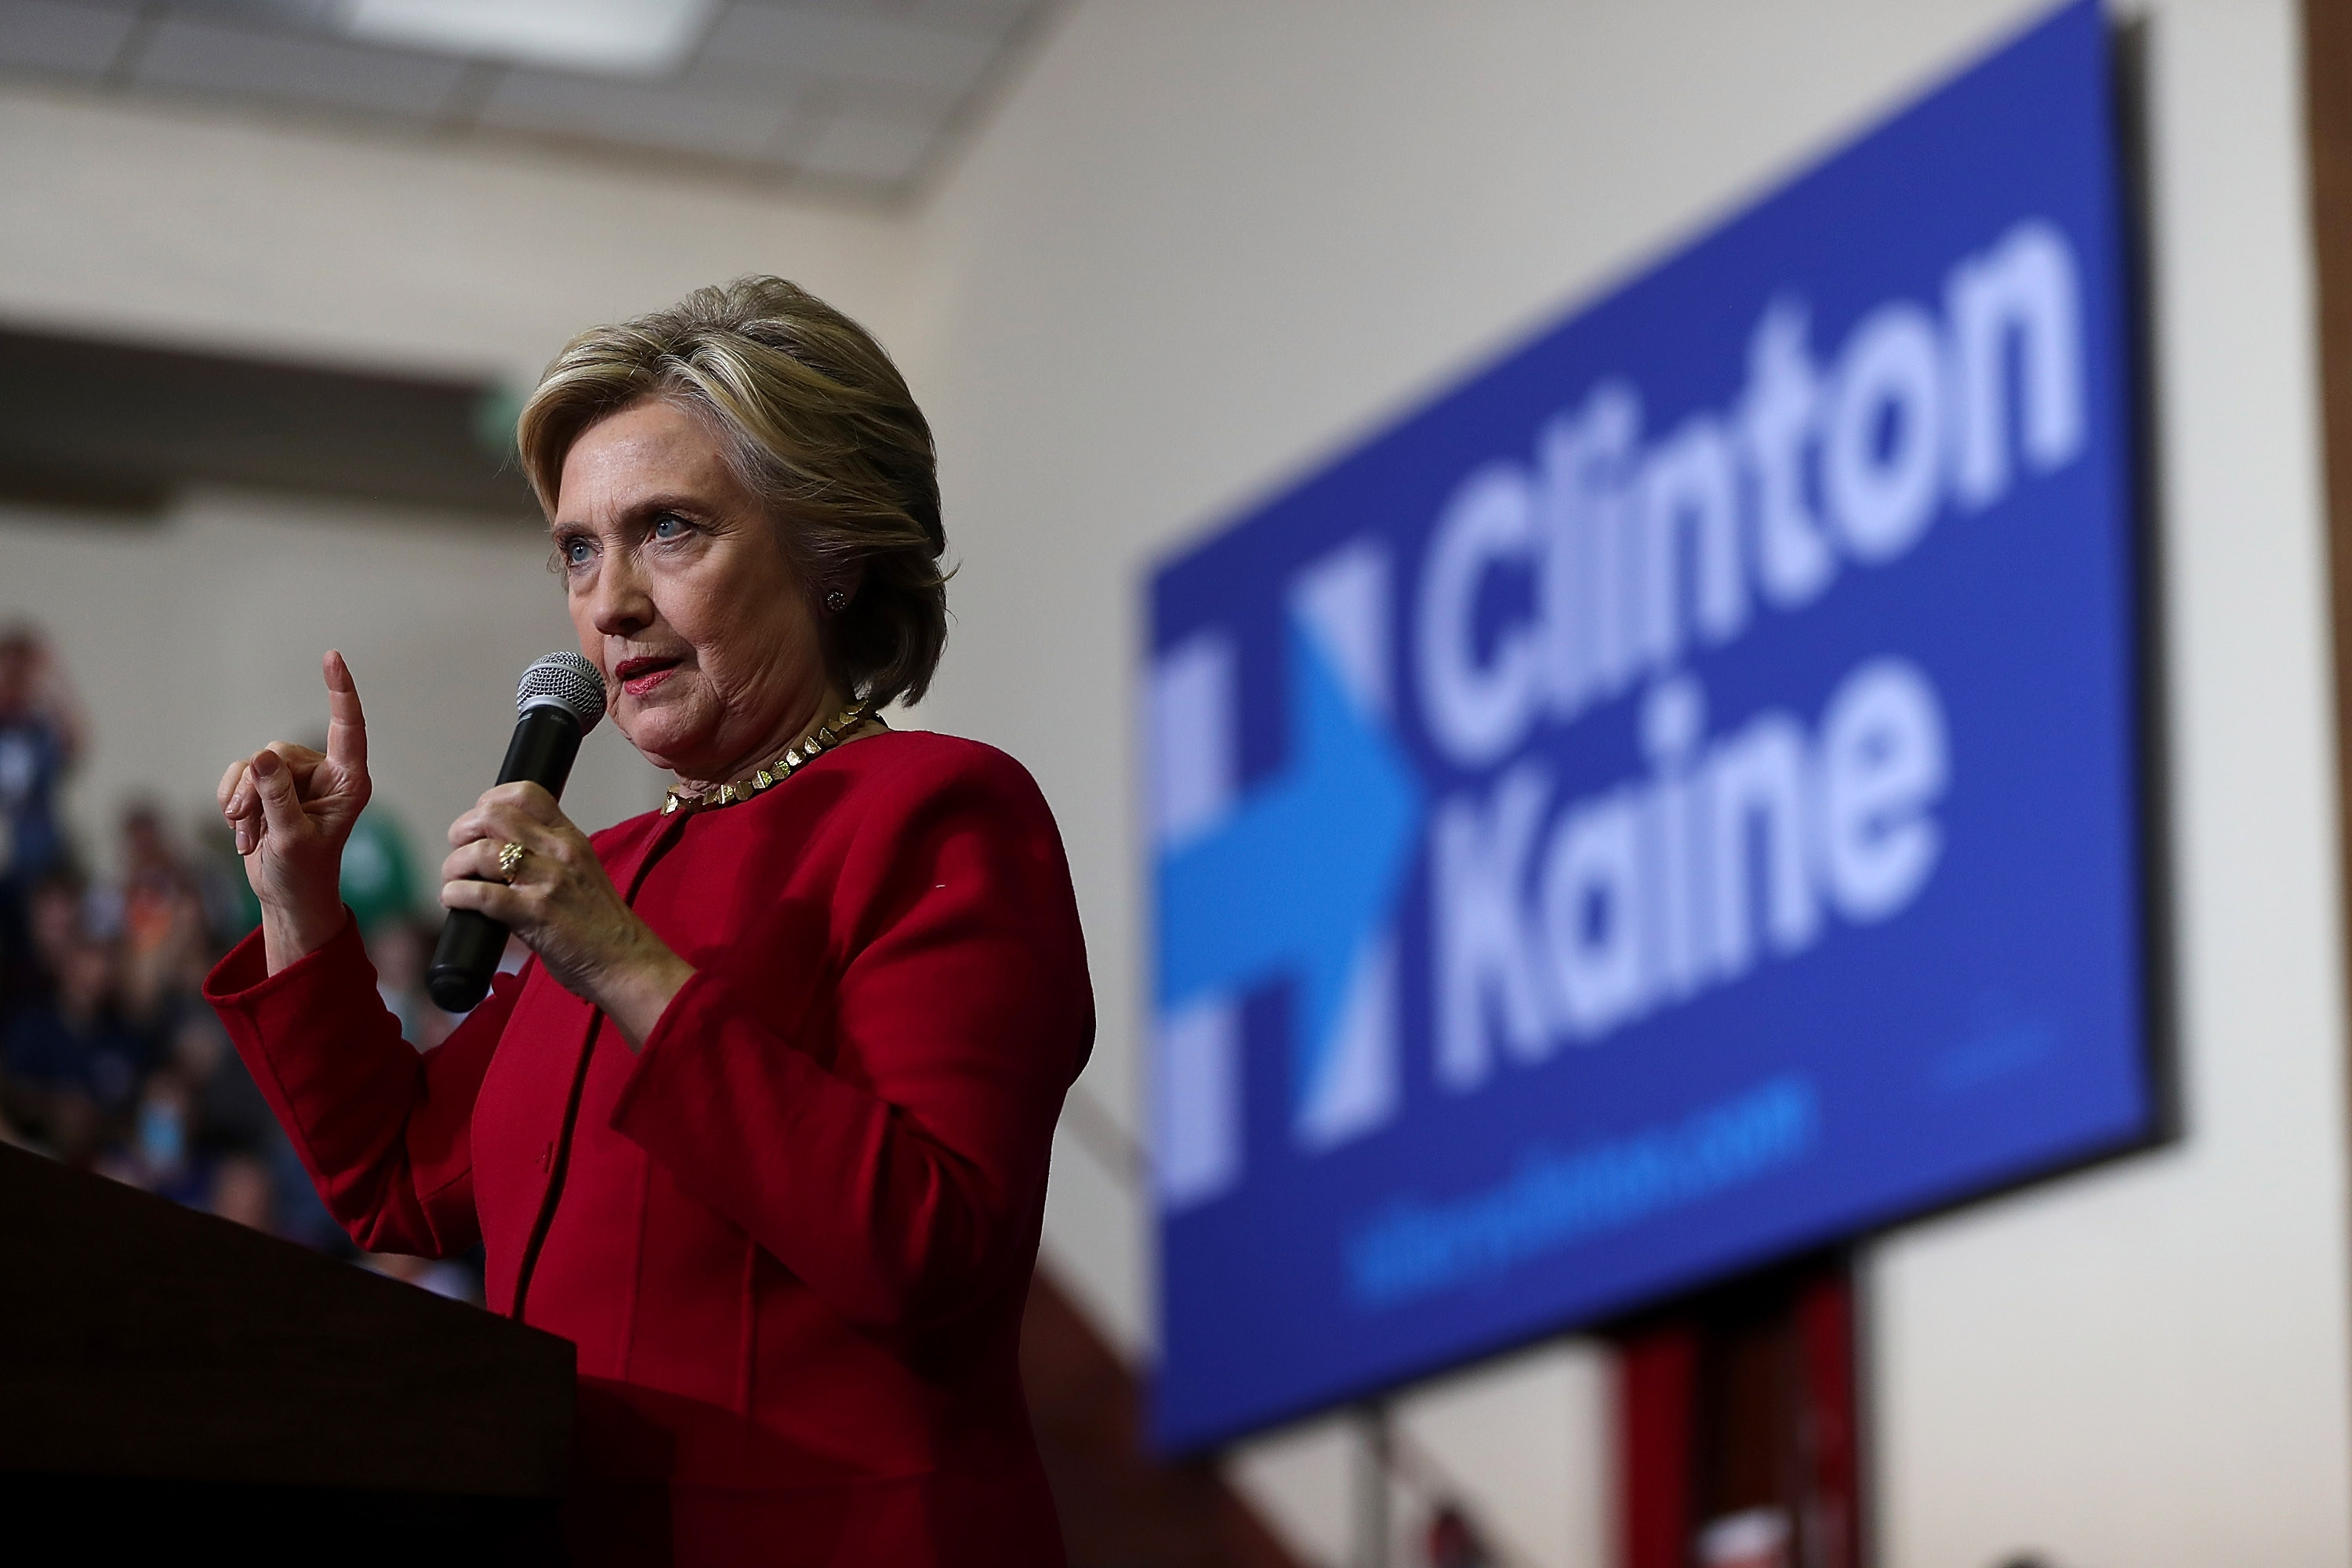 Democratic presidential nominee Hillary Clinton speaks during a campaign event in Harrisburg, Pa. (Getty Images)